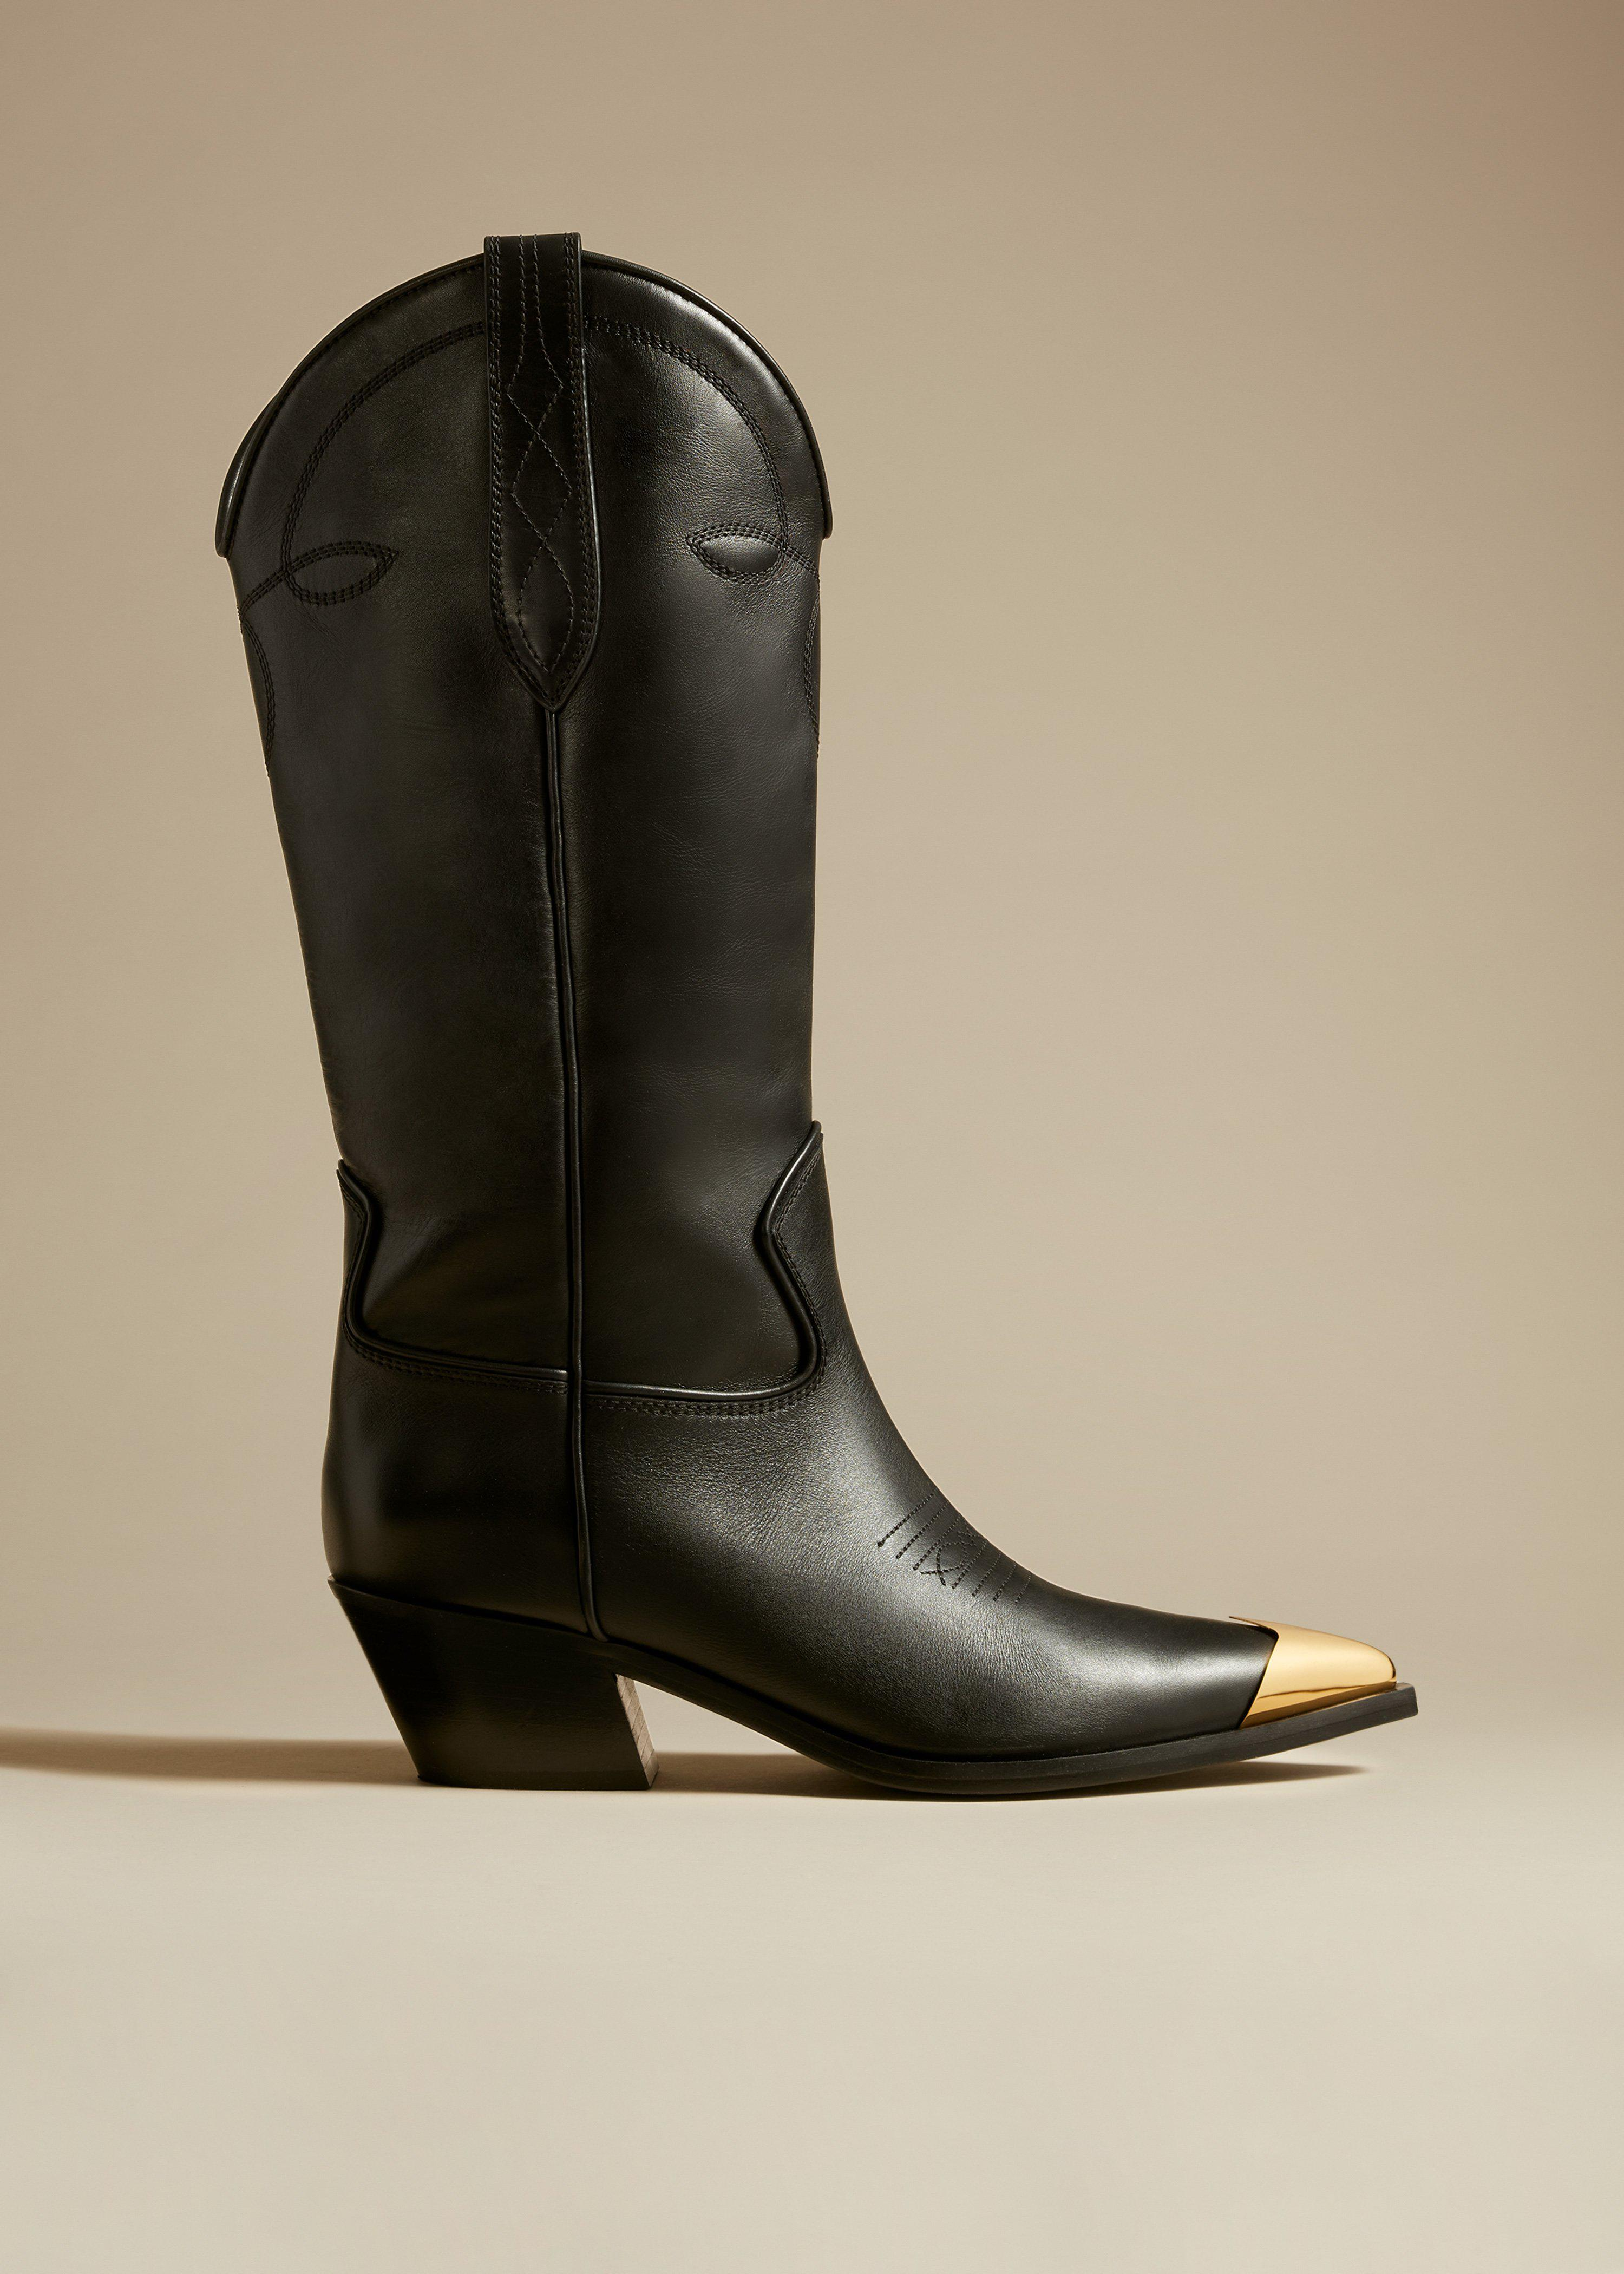 The Fontana Knee High Boot in Black Leather